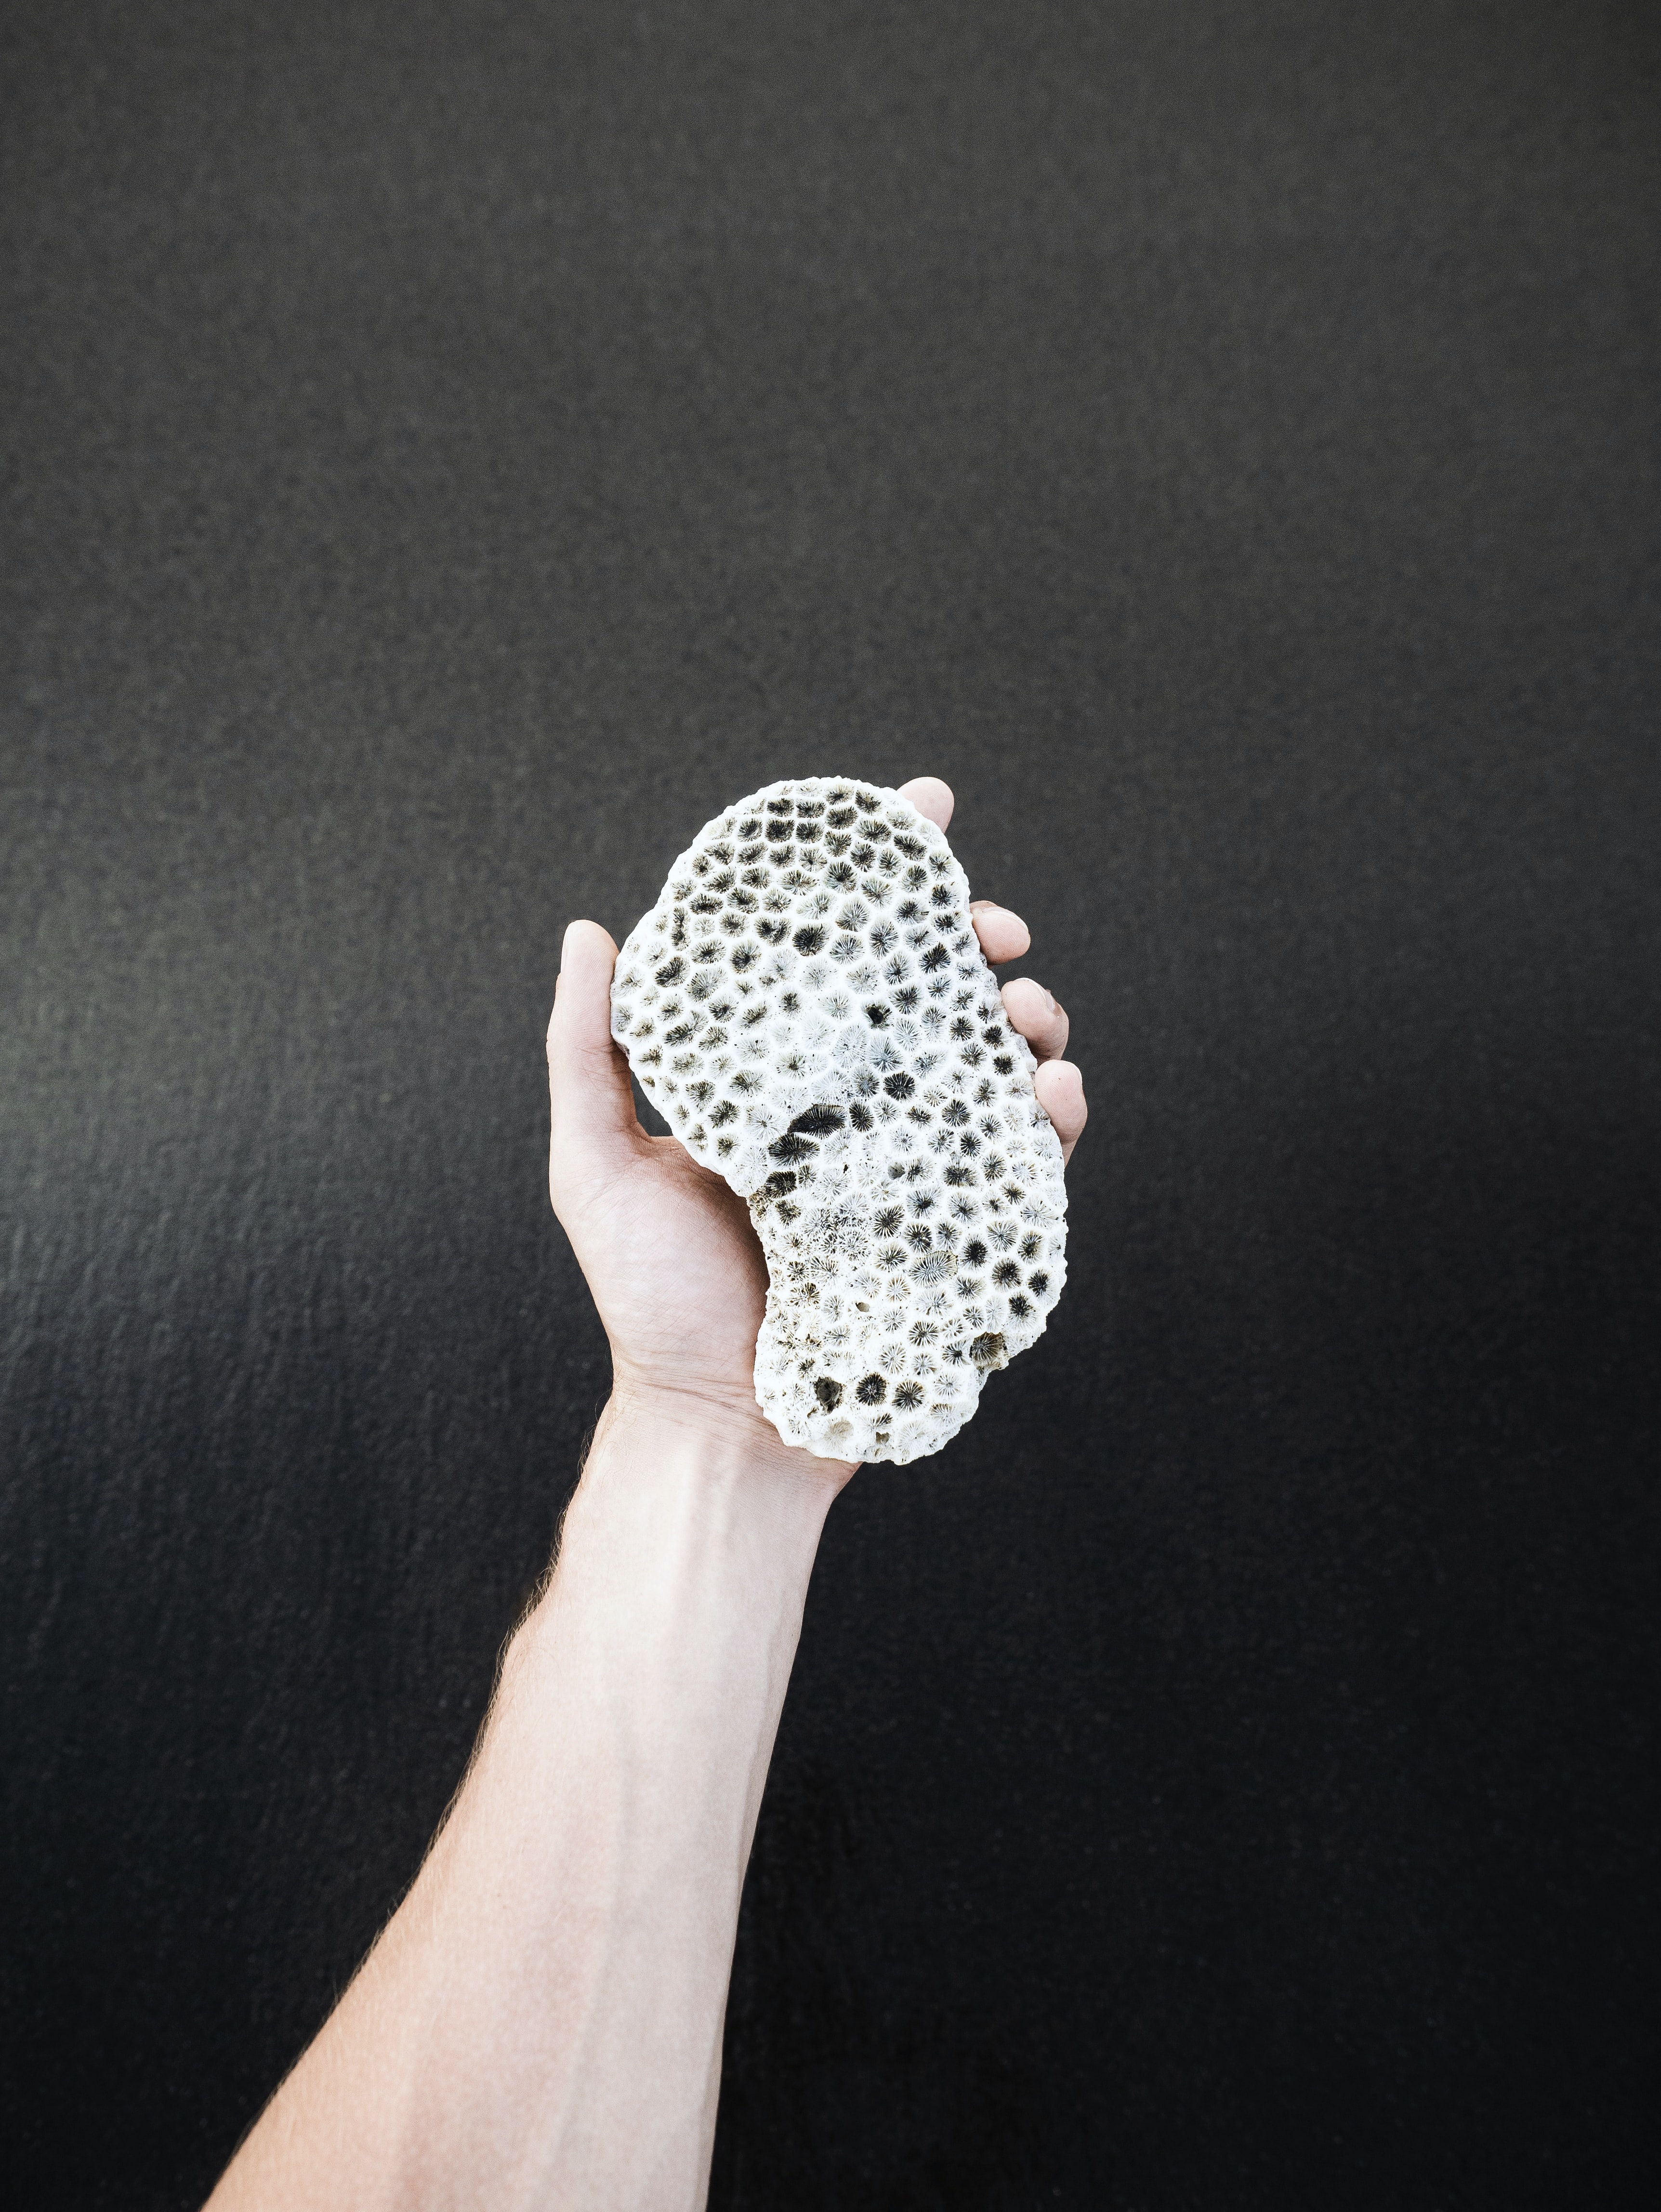 person's hand holding white stone